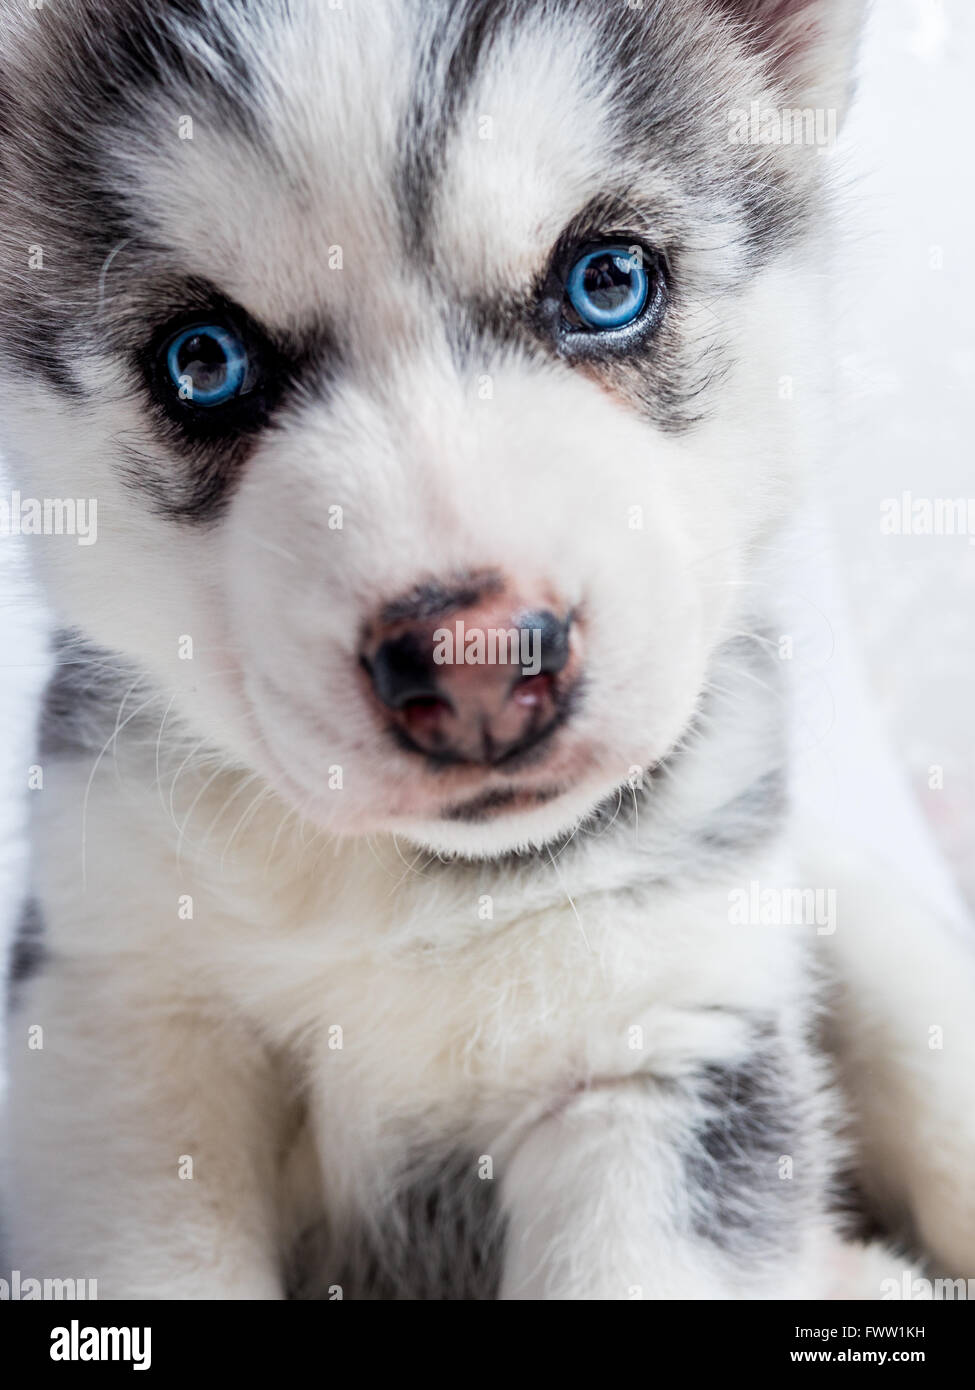 Cute Siberian Husky Puppy With Blue Eyes Stock Photo 101968373 Alamy